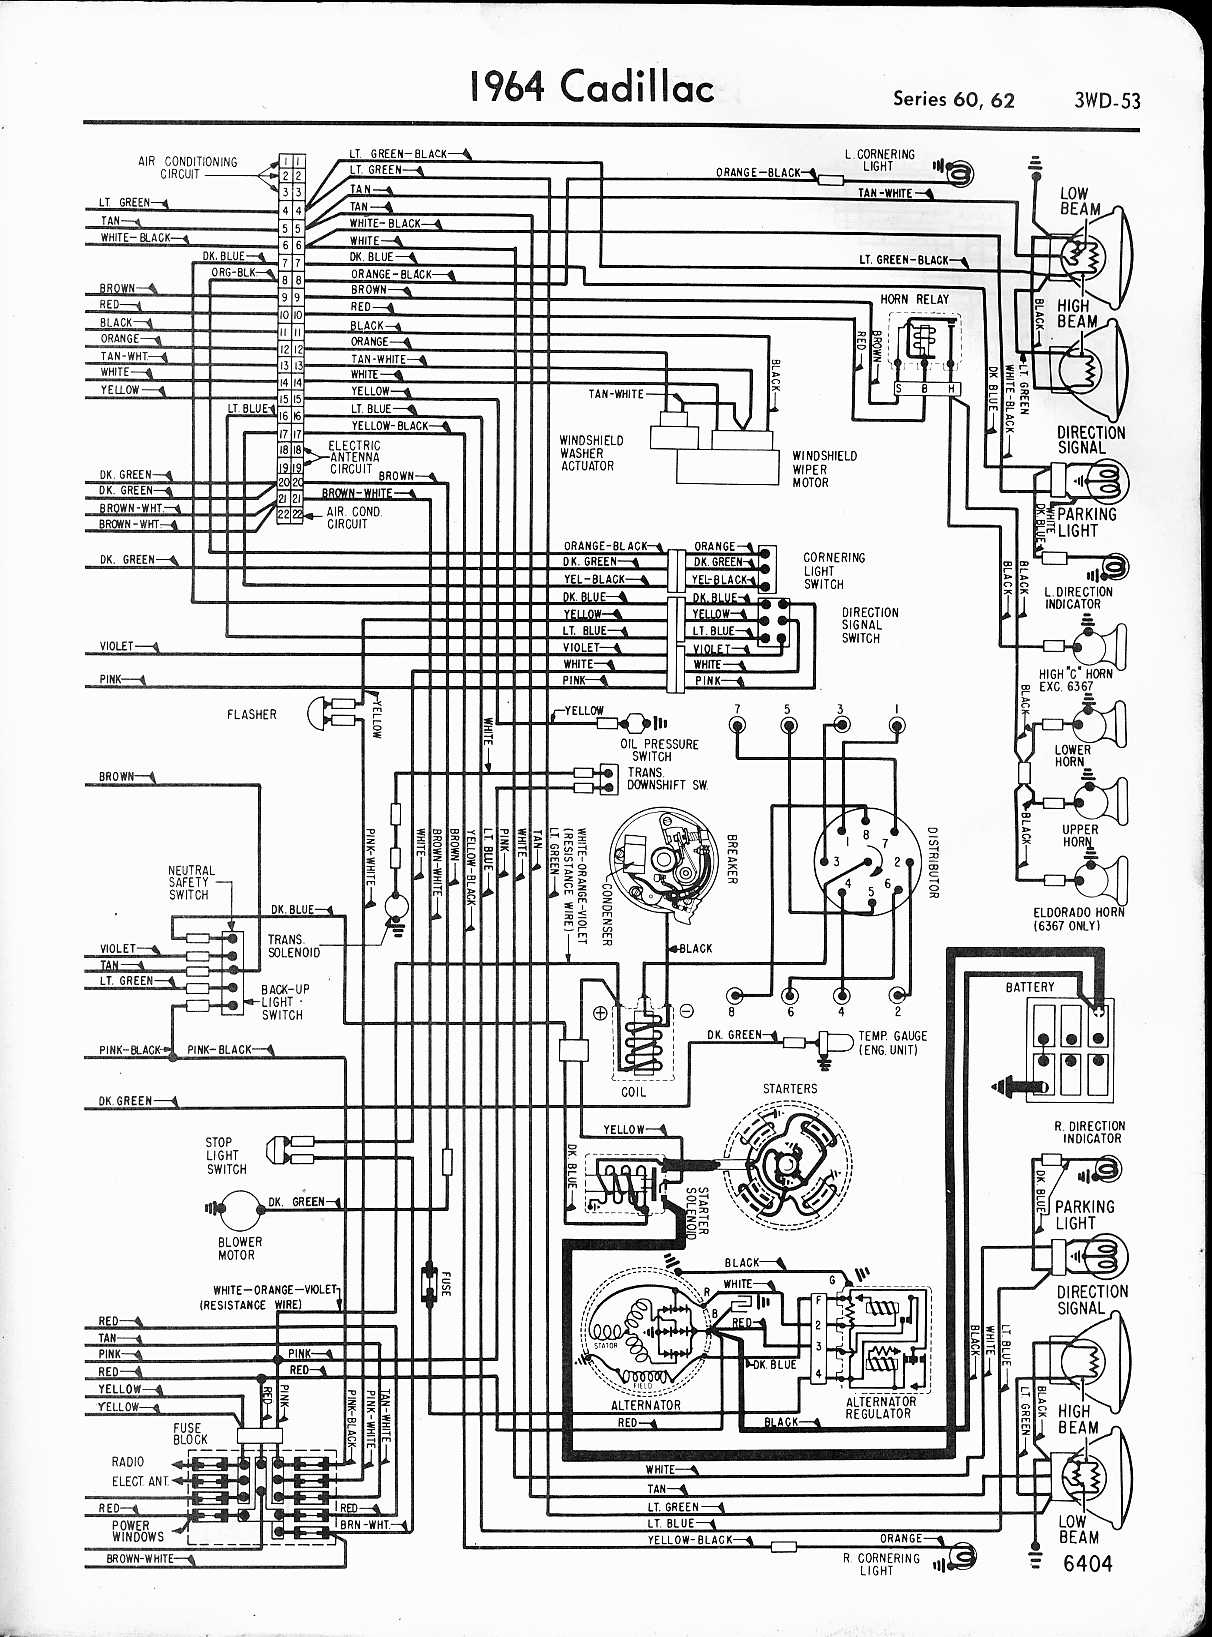 cadillac wiring diagrams 1957 1965 2012 Cadillac Wiring Schematics 1964 series 60, 62 left